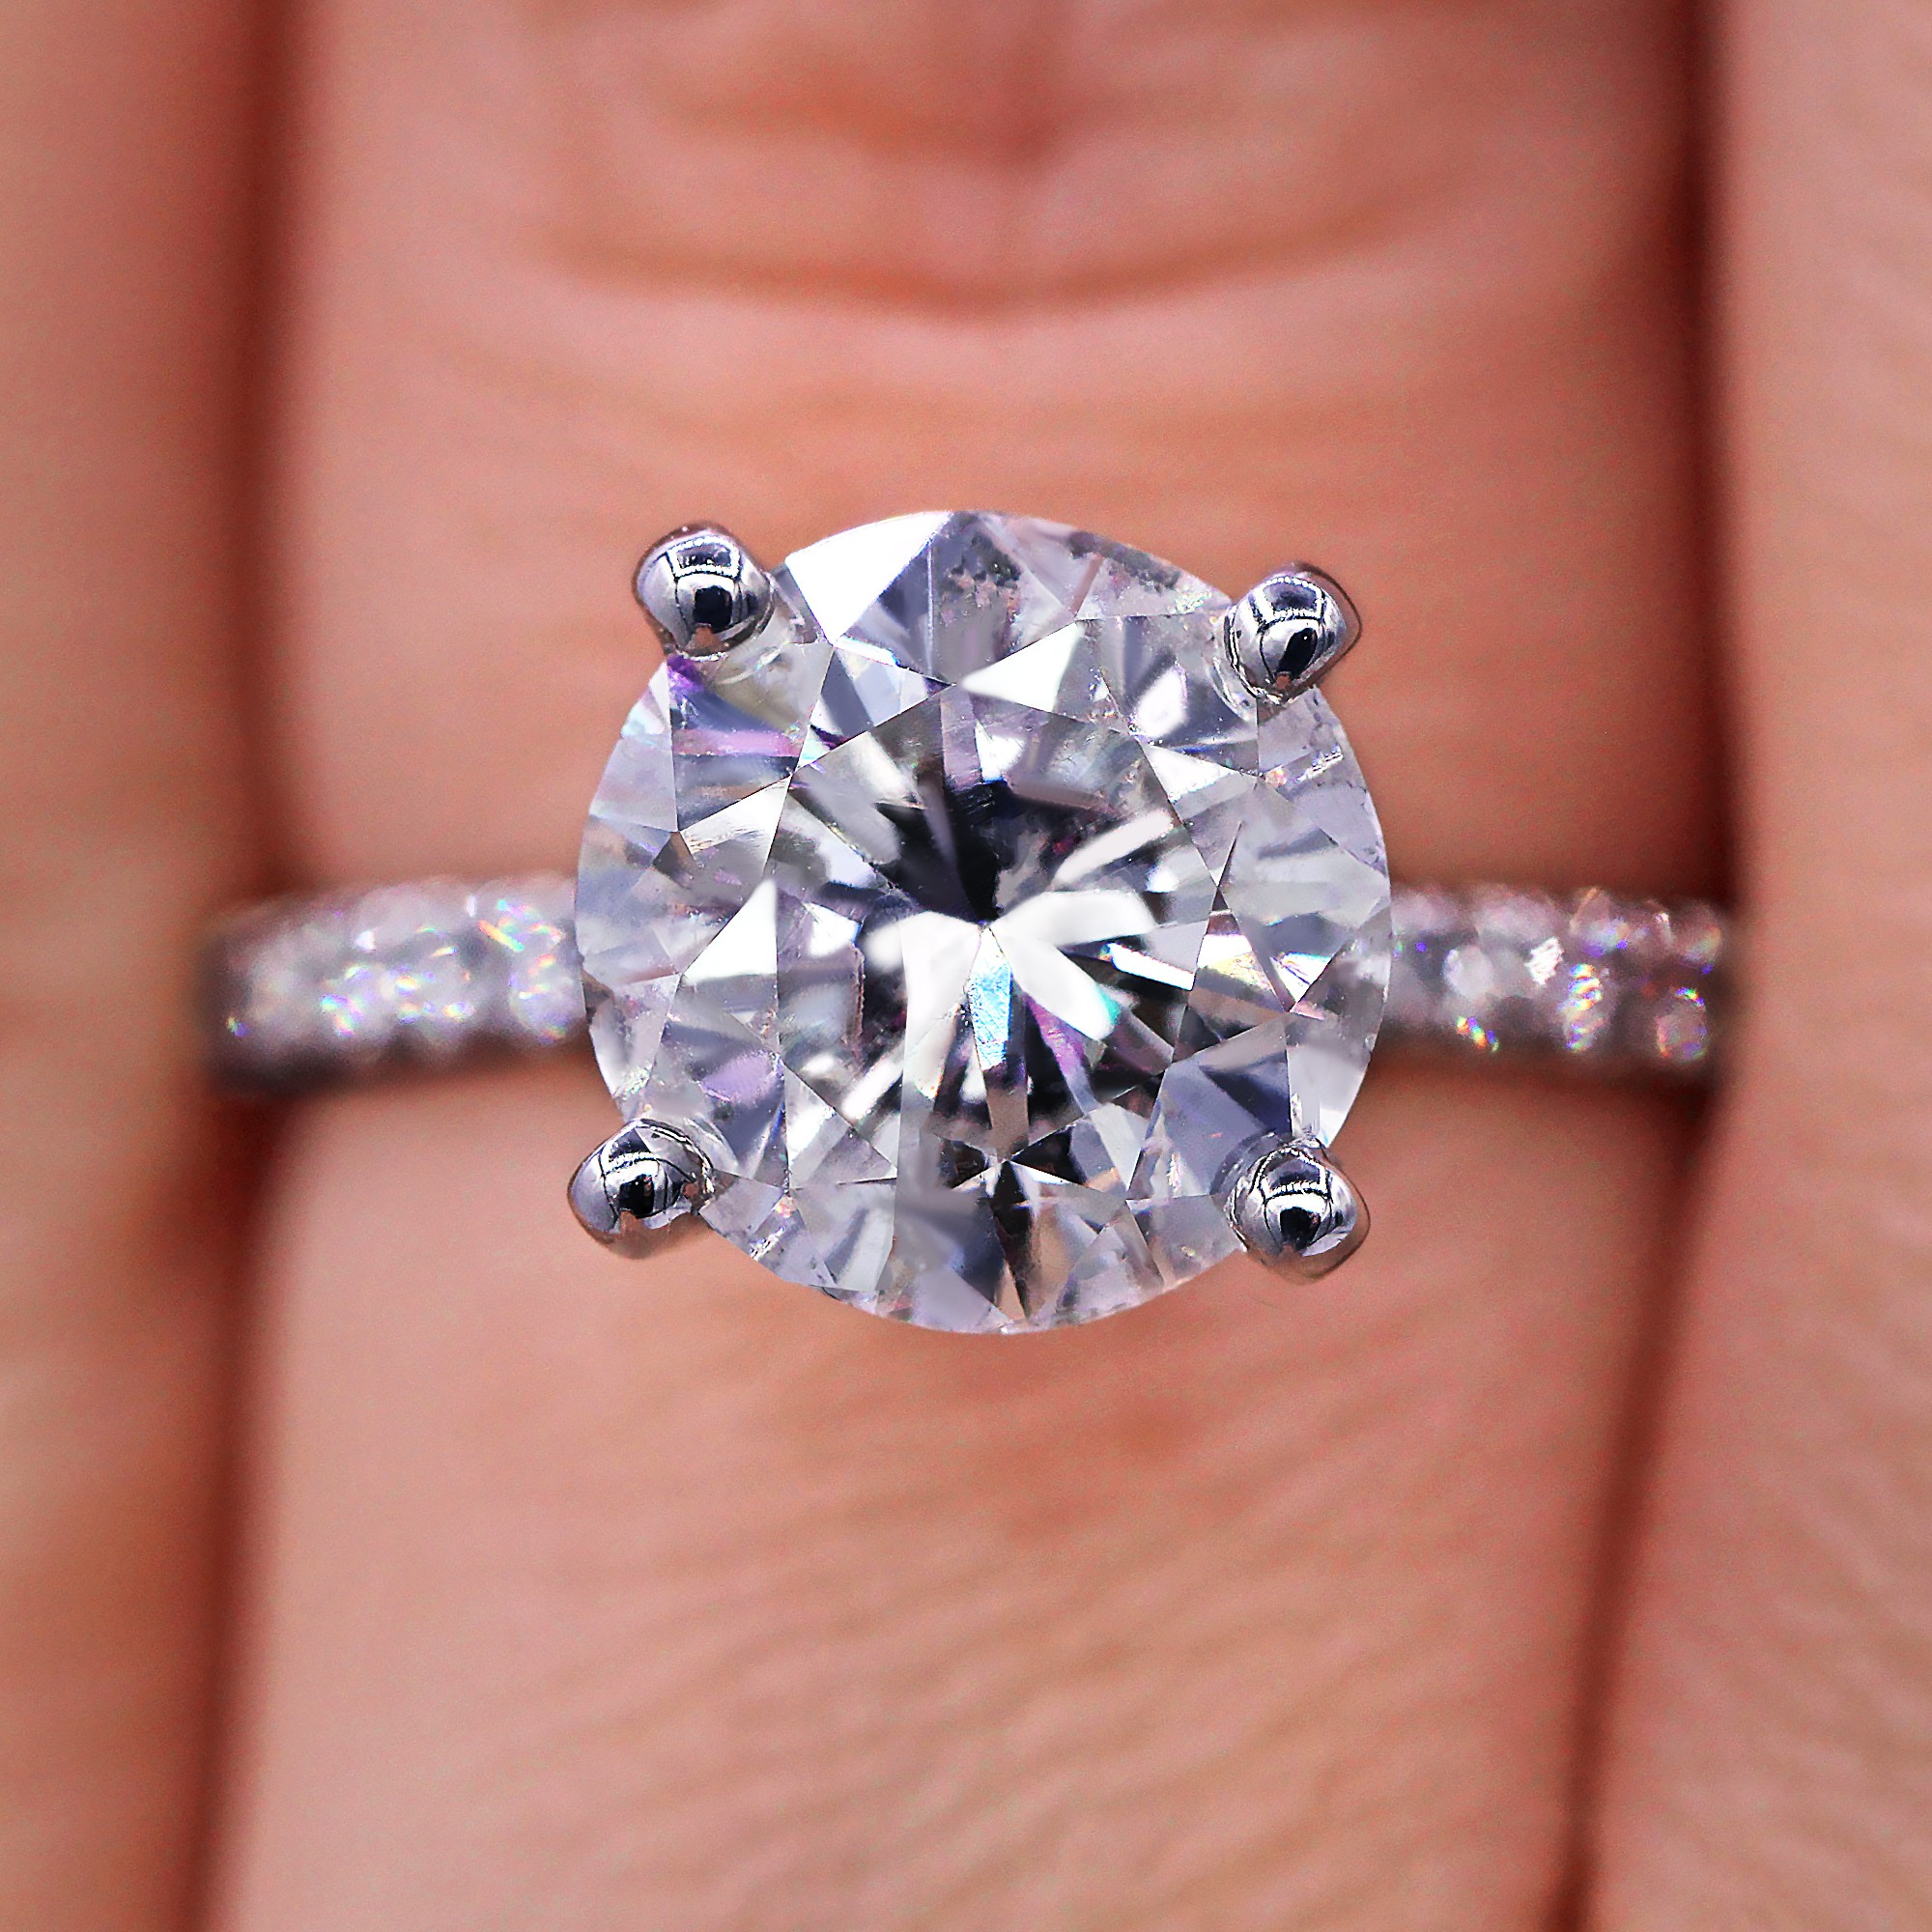 Magnificent 3.37 TCW diamond engagement ring